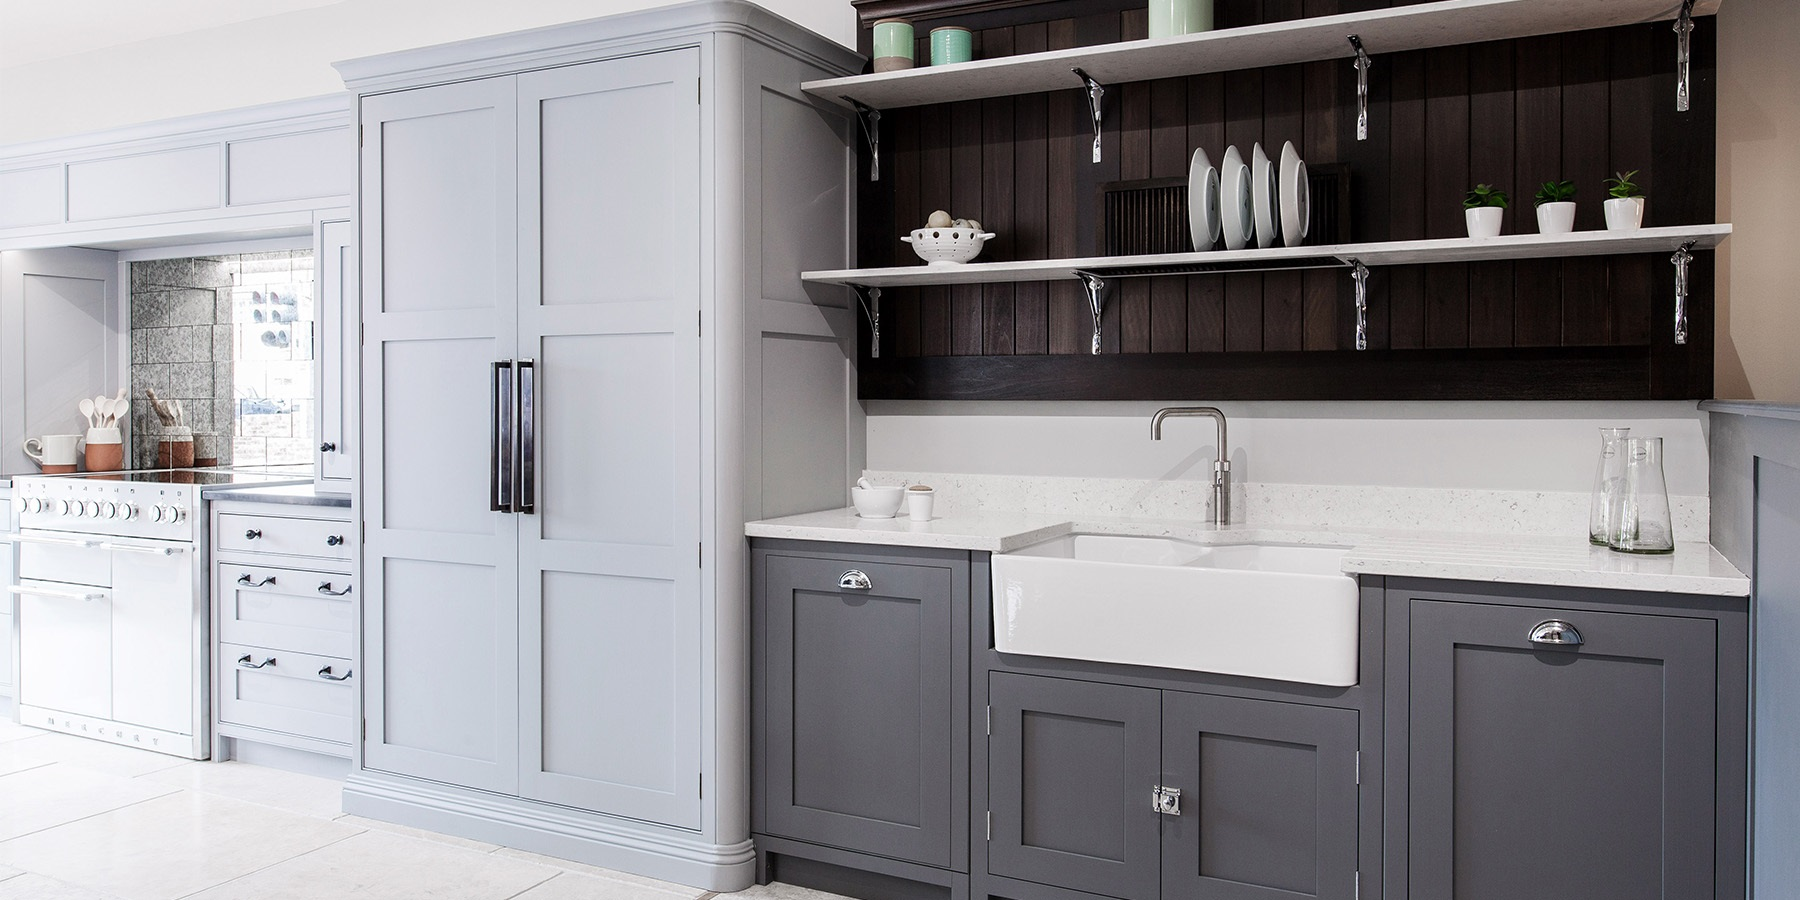 Beautiful Handmade Kitchen Larder - Burlanes classic Hoyden kitchen larder in grey, as part of our kitchen display at Burlanes Chelmsford.